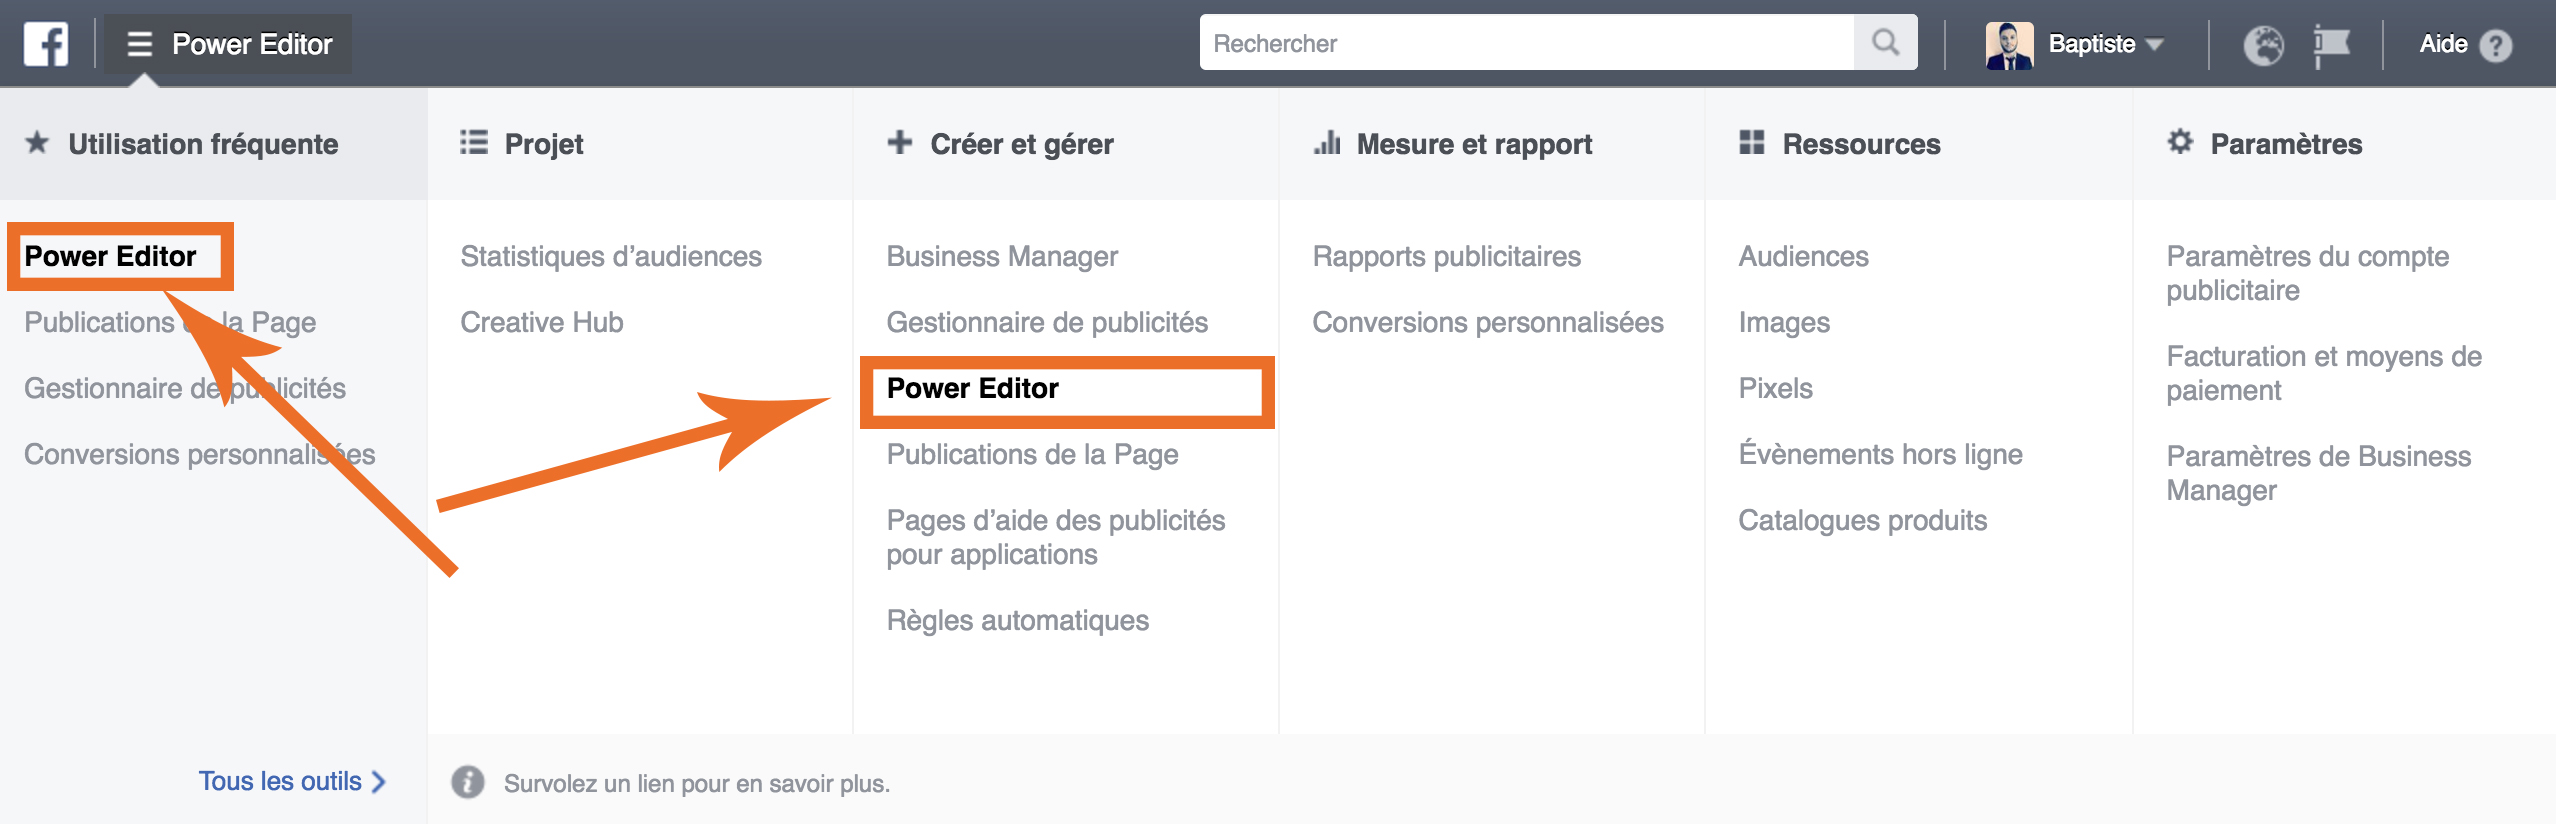 accedez-au-power-editor-comment-utiliser-outil-split-testing-blog-social-media-pro